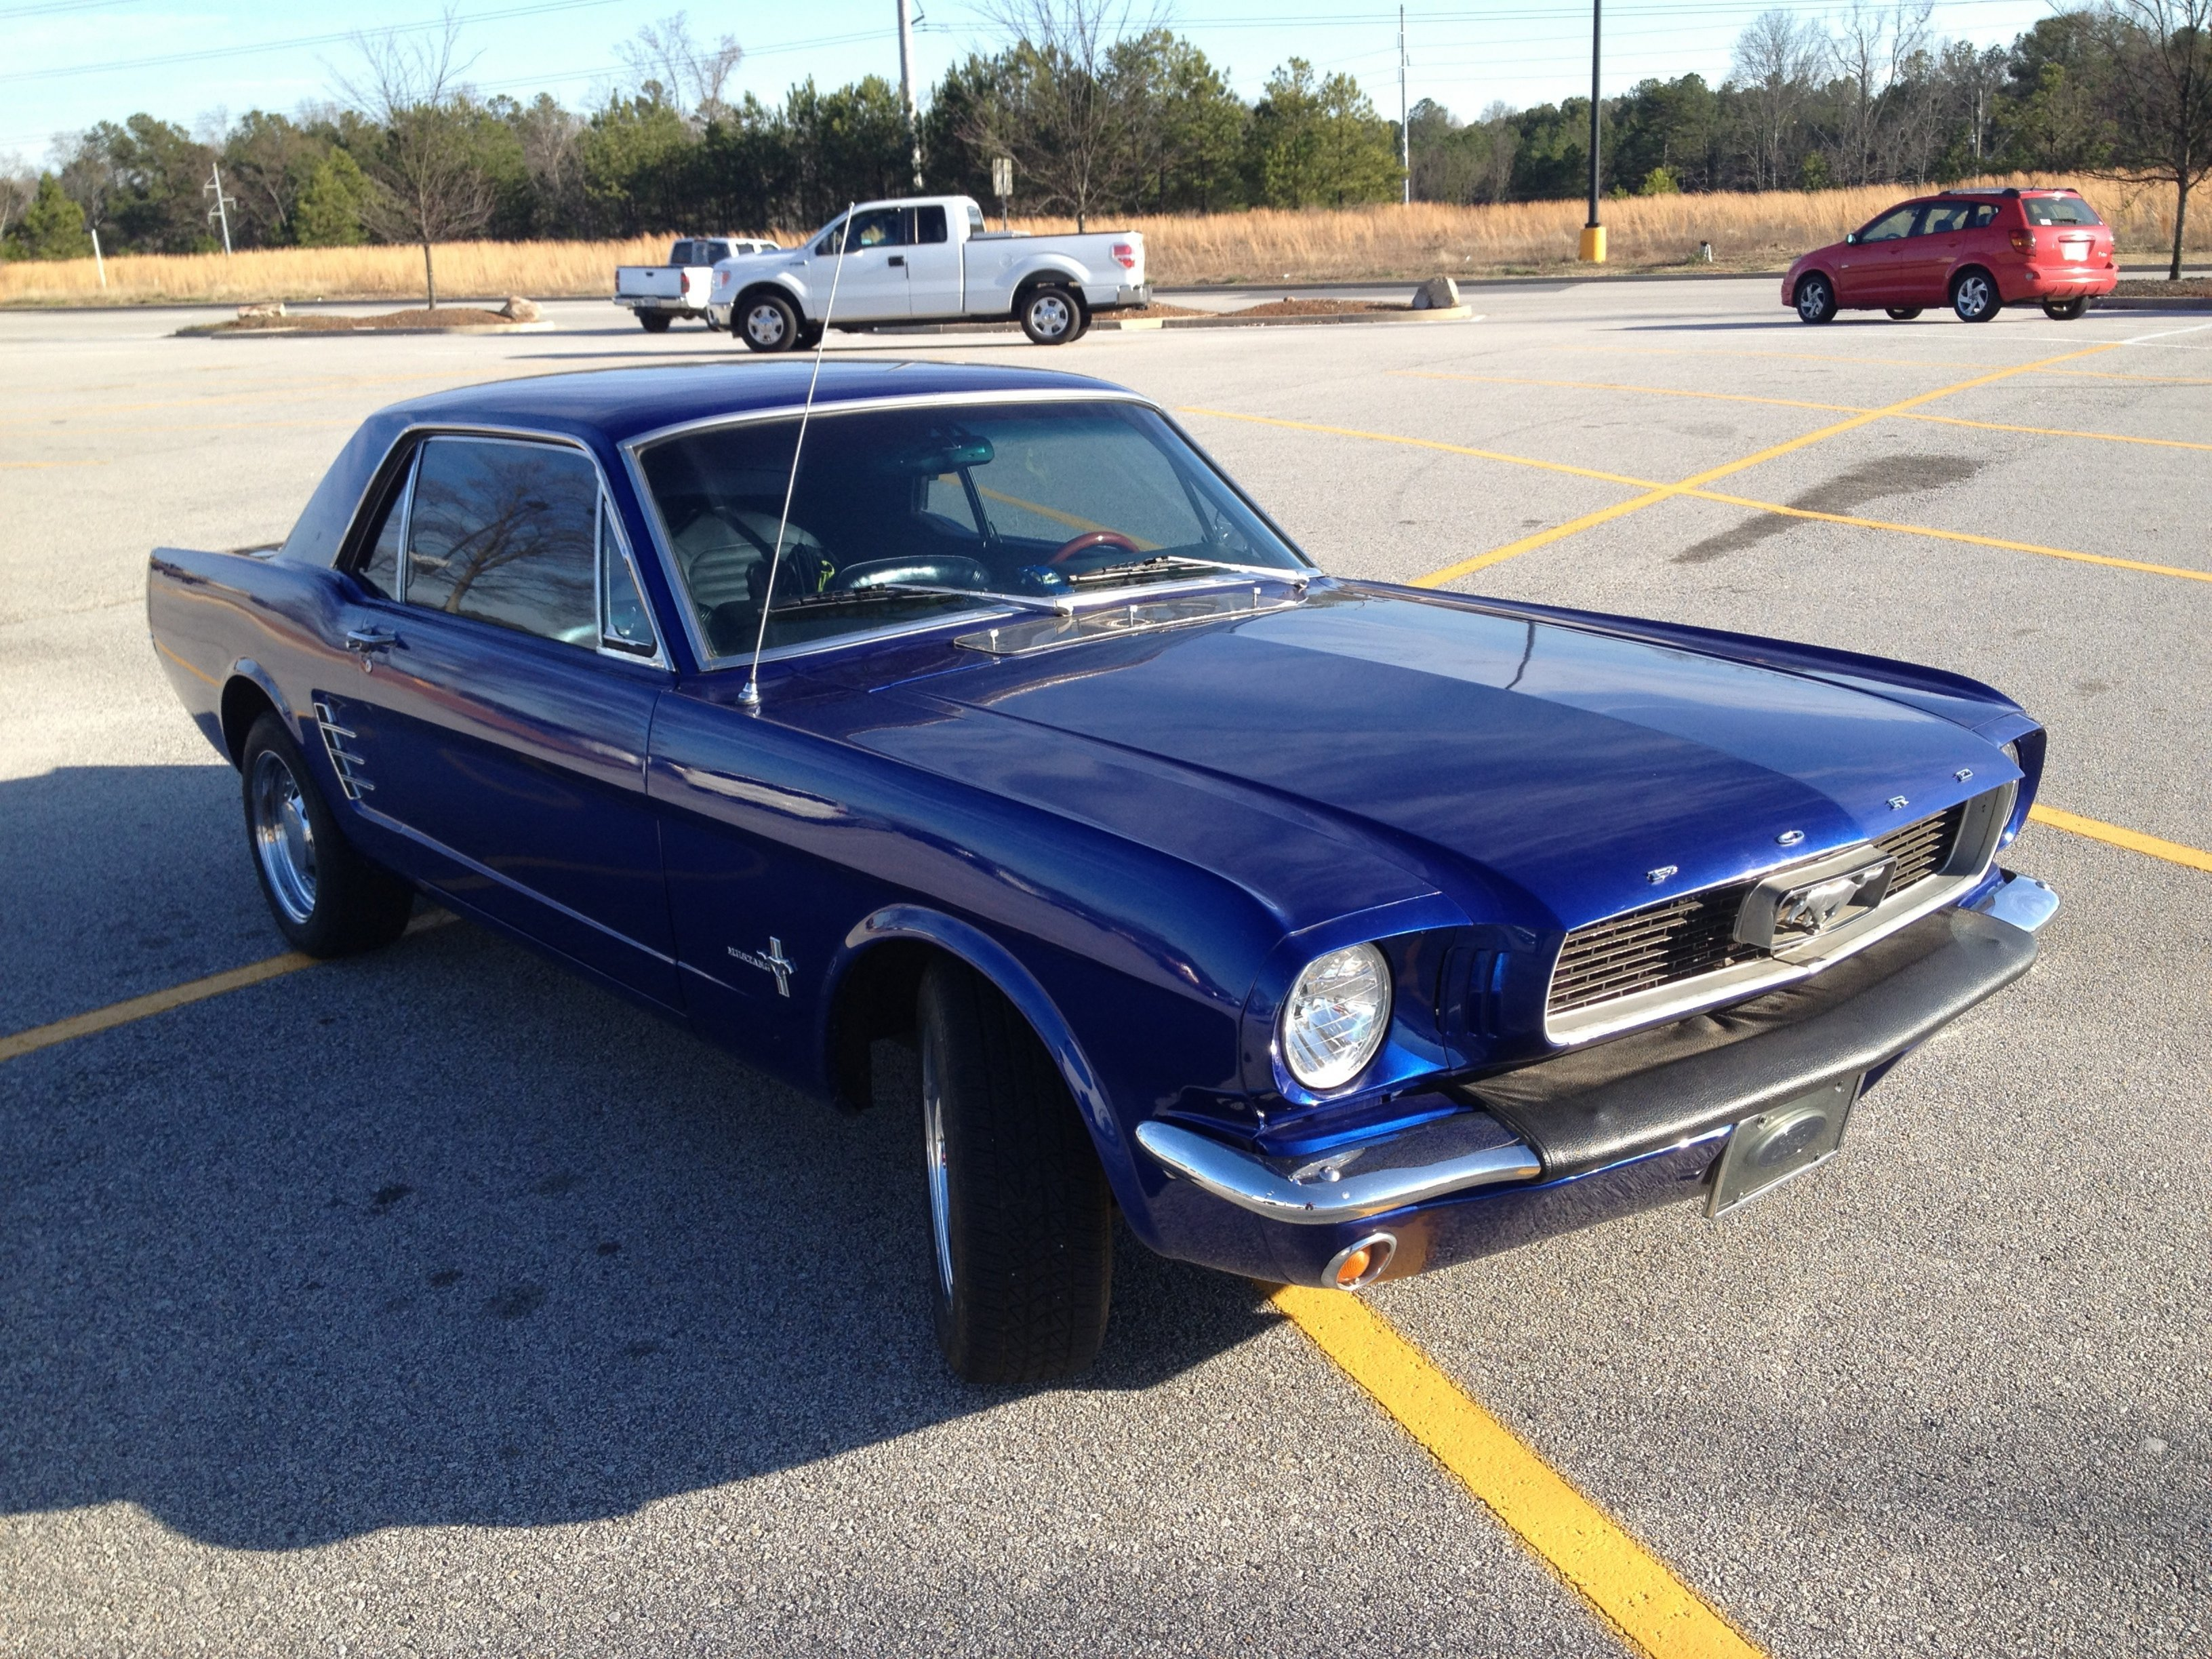 Click image for larger version  Name:classic Mustang2.jpg Views:209 Size:1.77 MB ID:135915